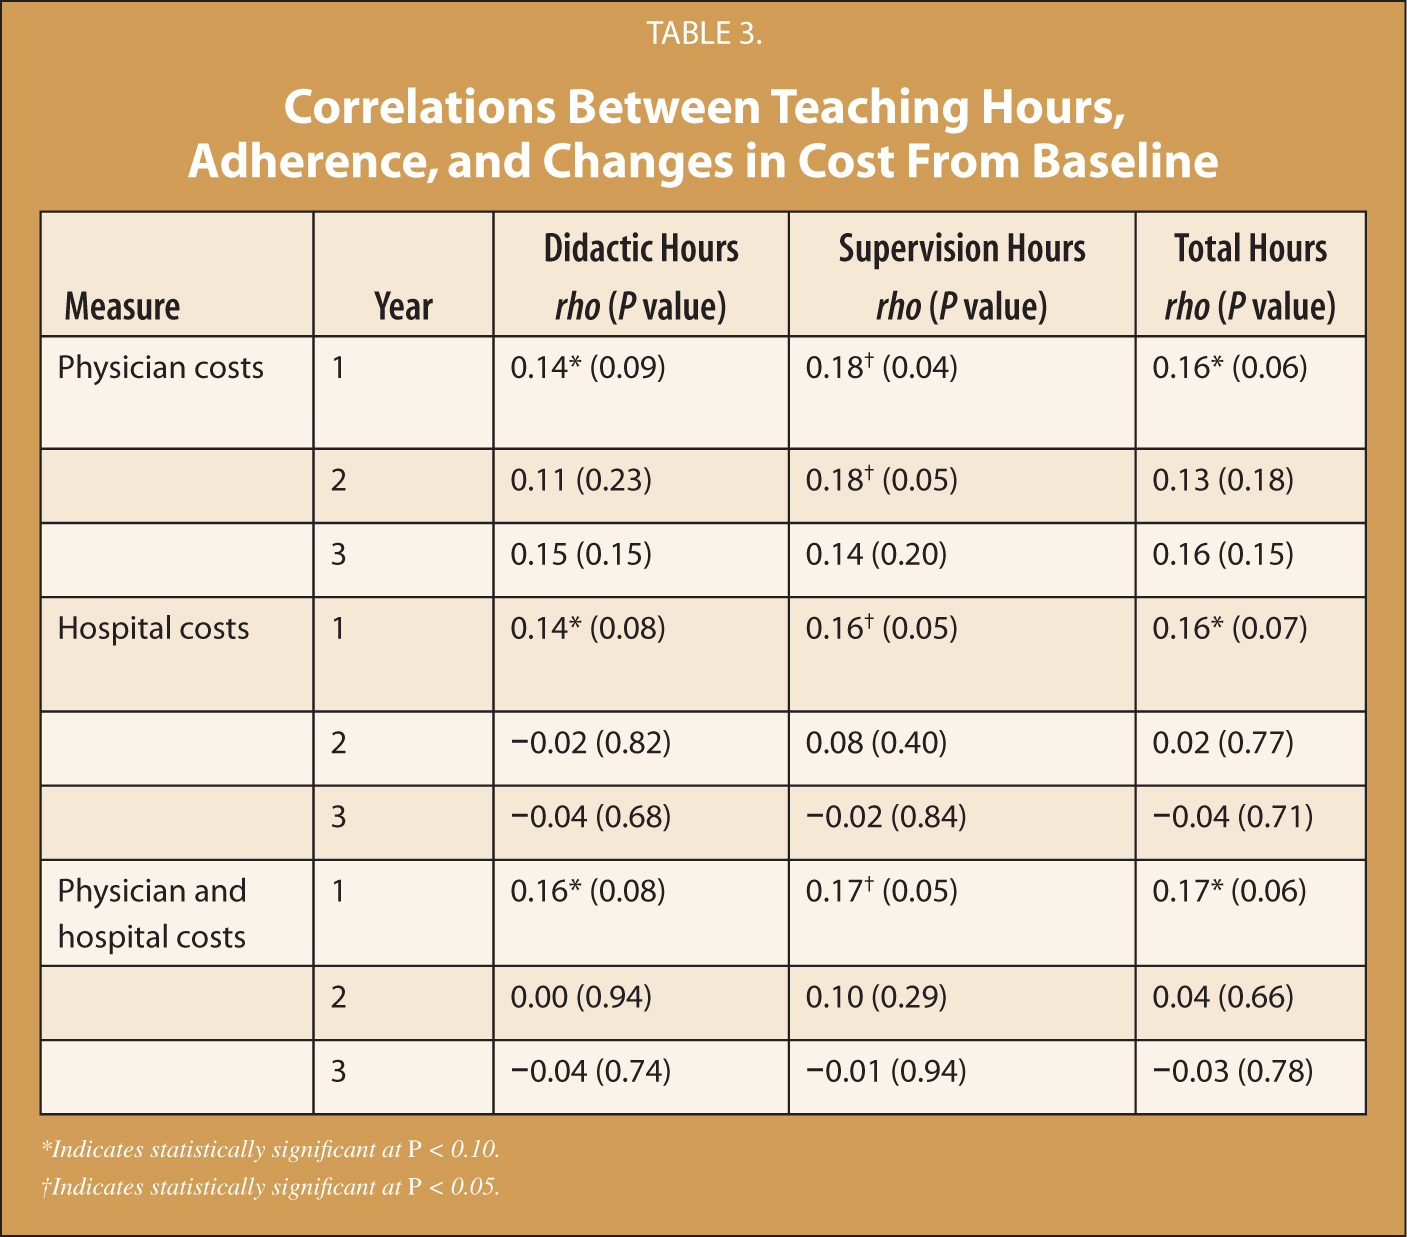 Correlations Between Teaching Hours, Adherence, and Changes in Cost From Baseline